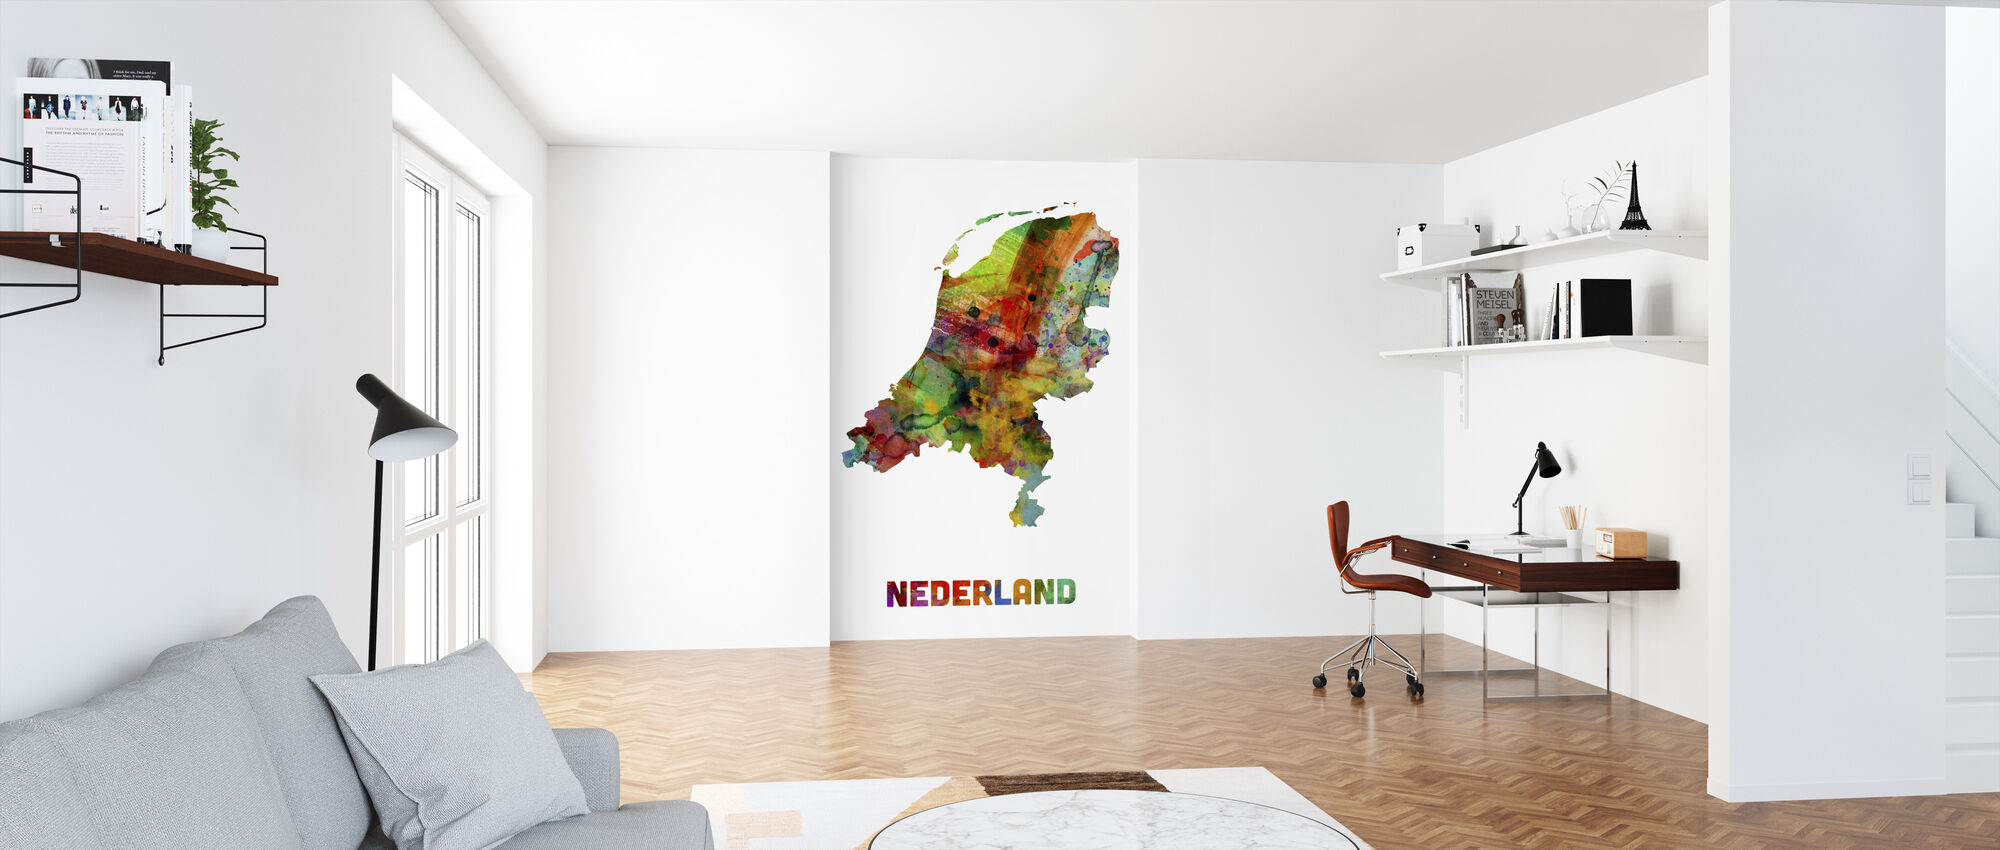 Nederland Watercolor Kaart - Behang - Kantoor